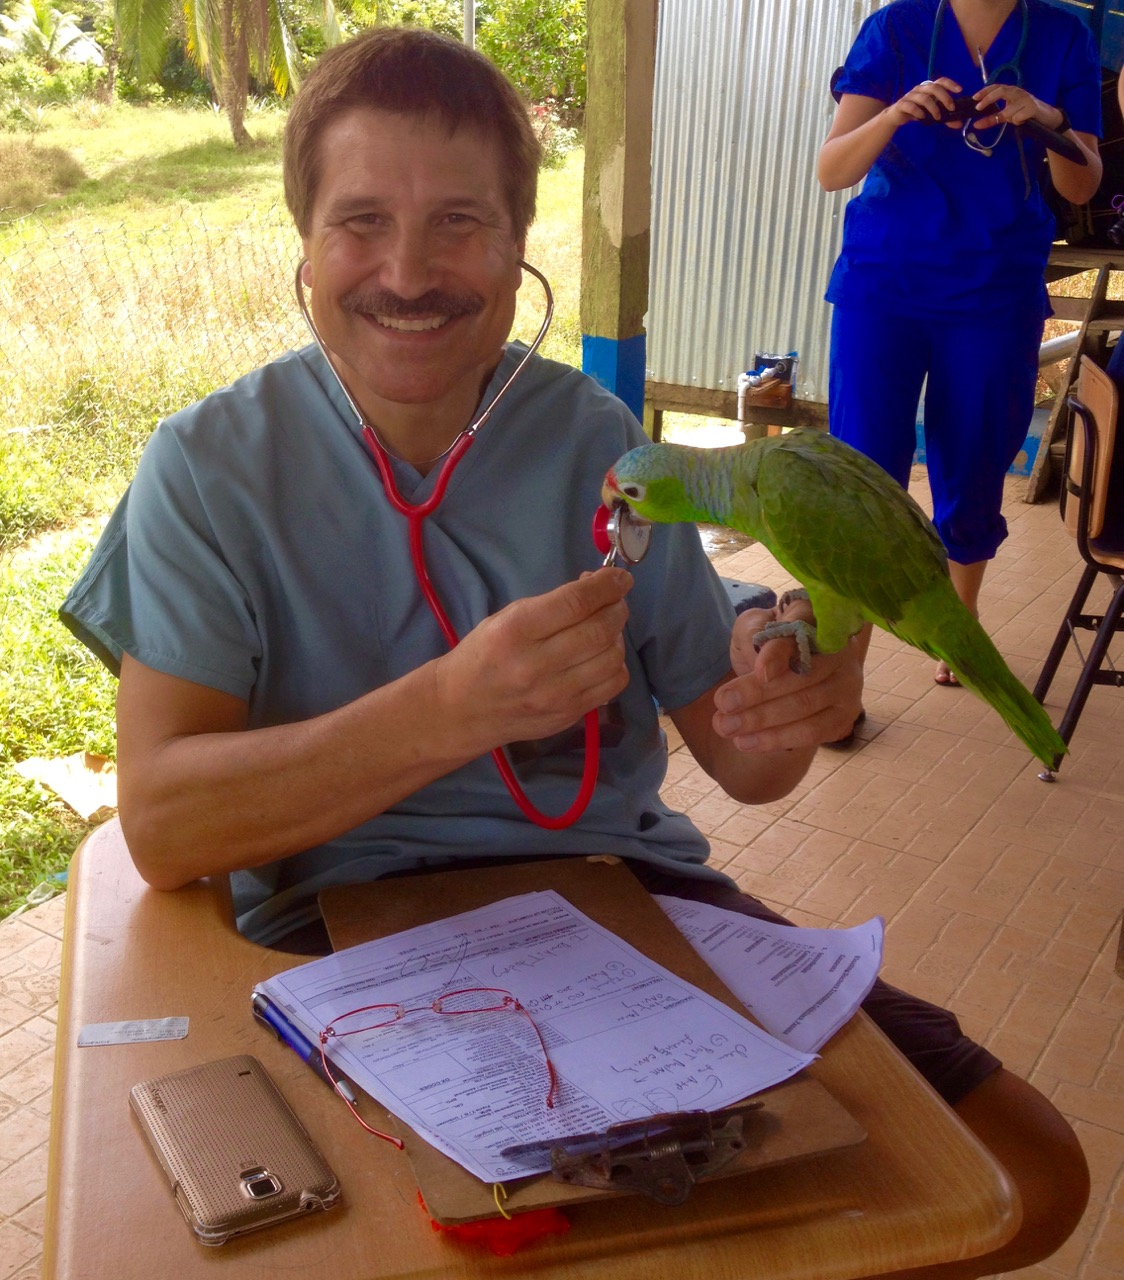 Taking a Break from People Patients, Though This Parrot Thinks It's A Person